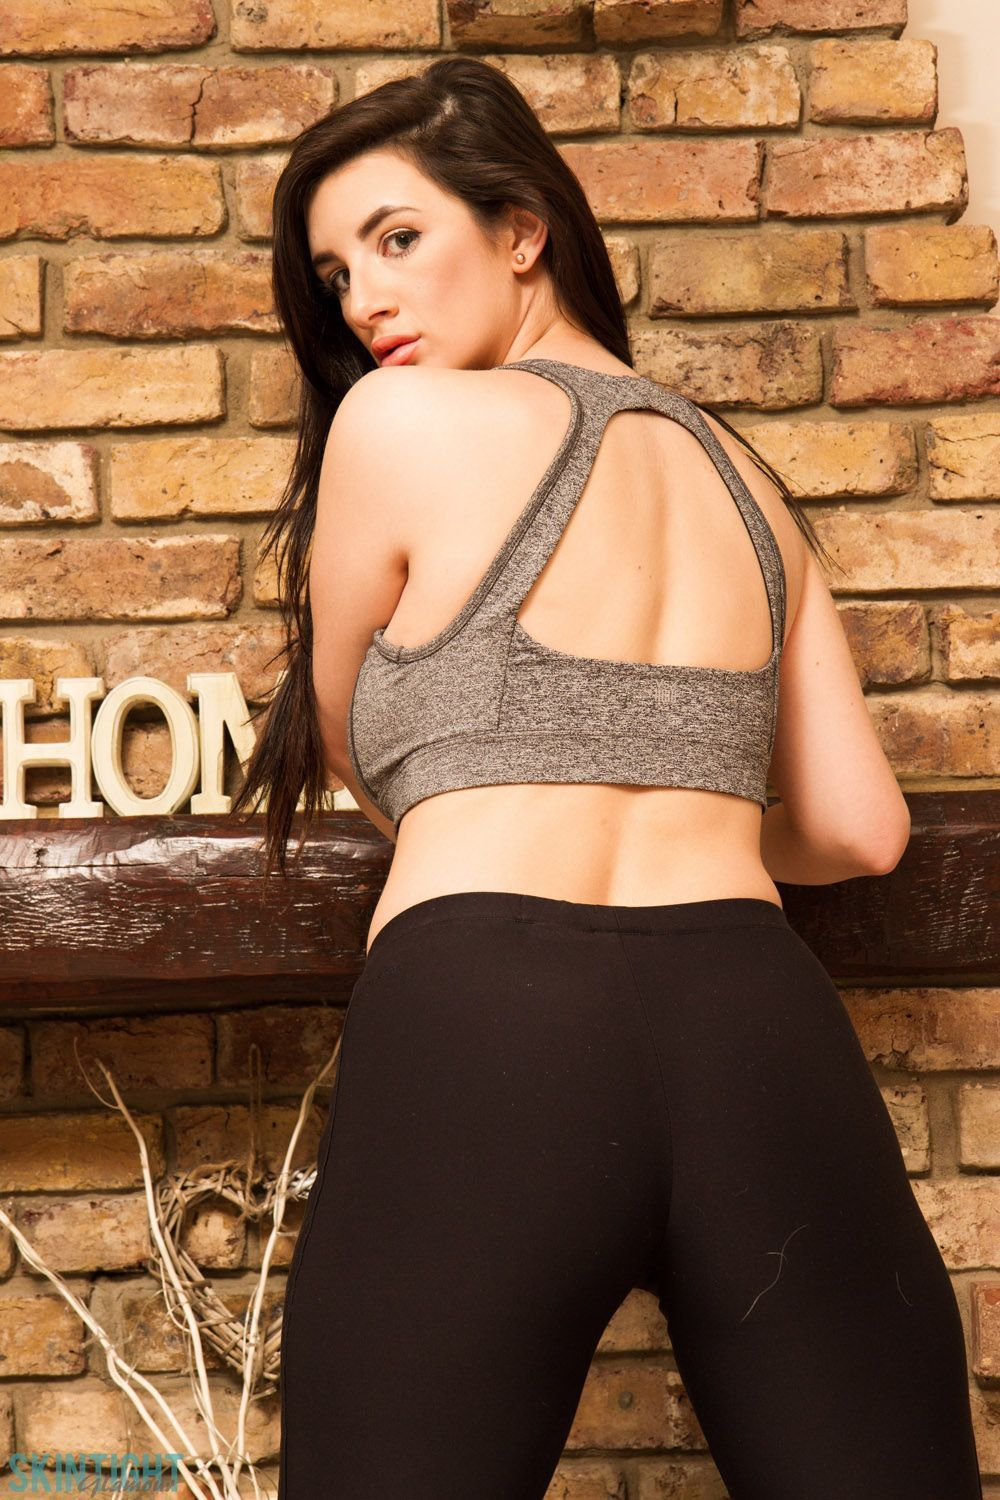 cara_ruby_black_yoga_pants_for_skin_tight_glamour_003.jpg